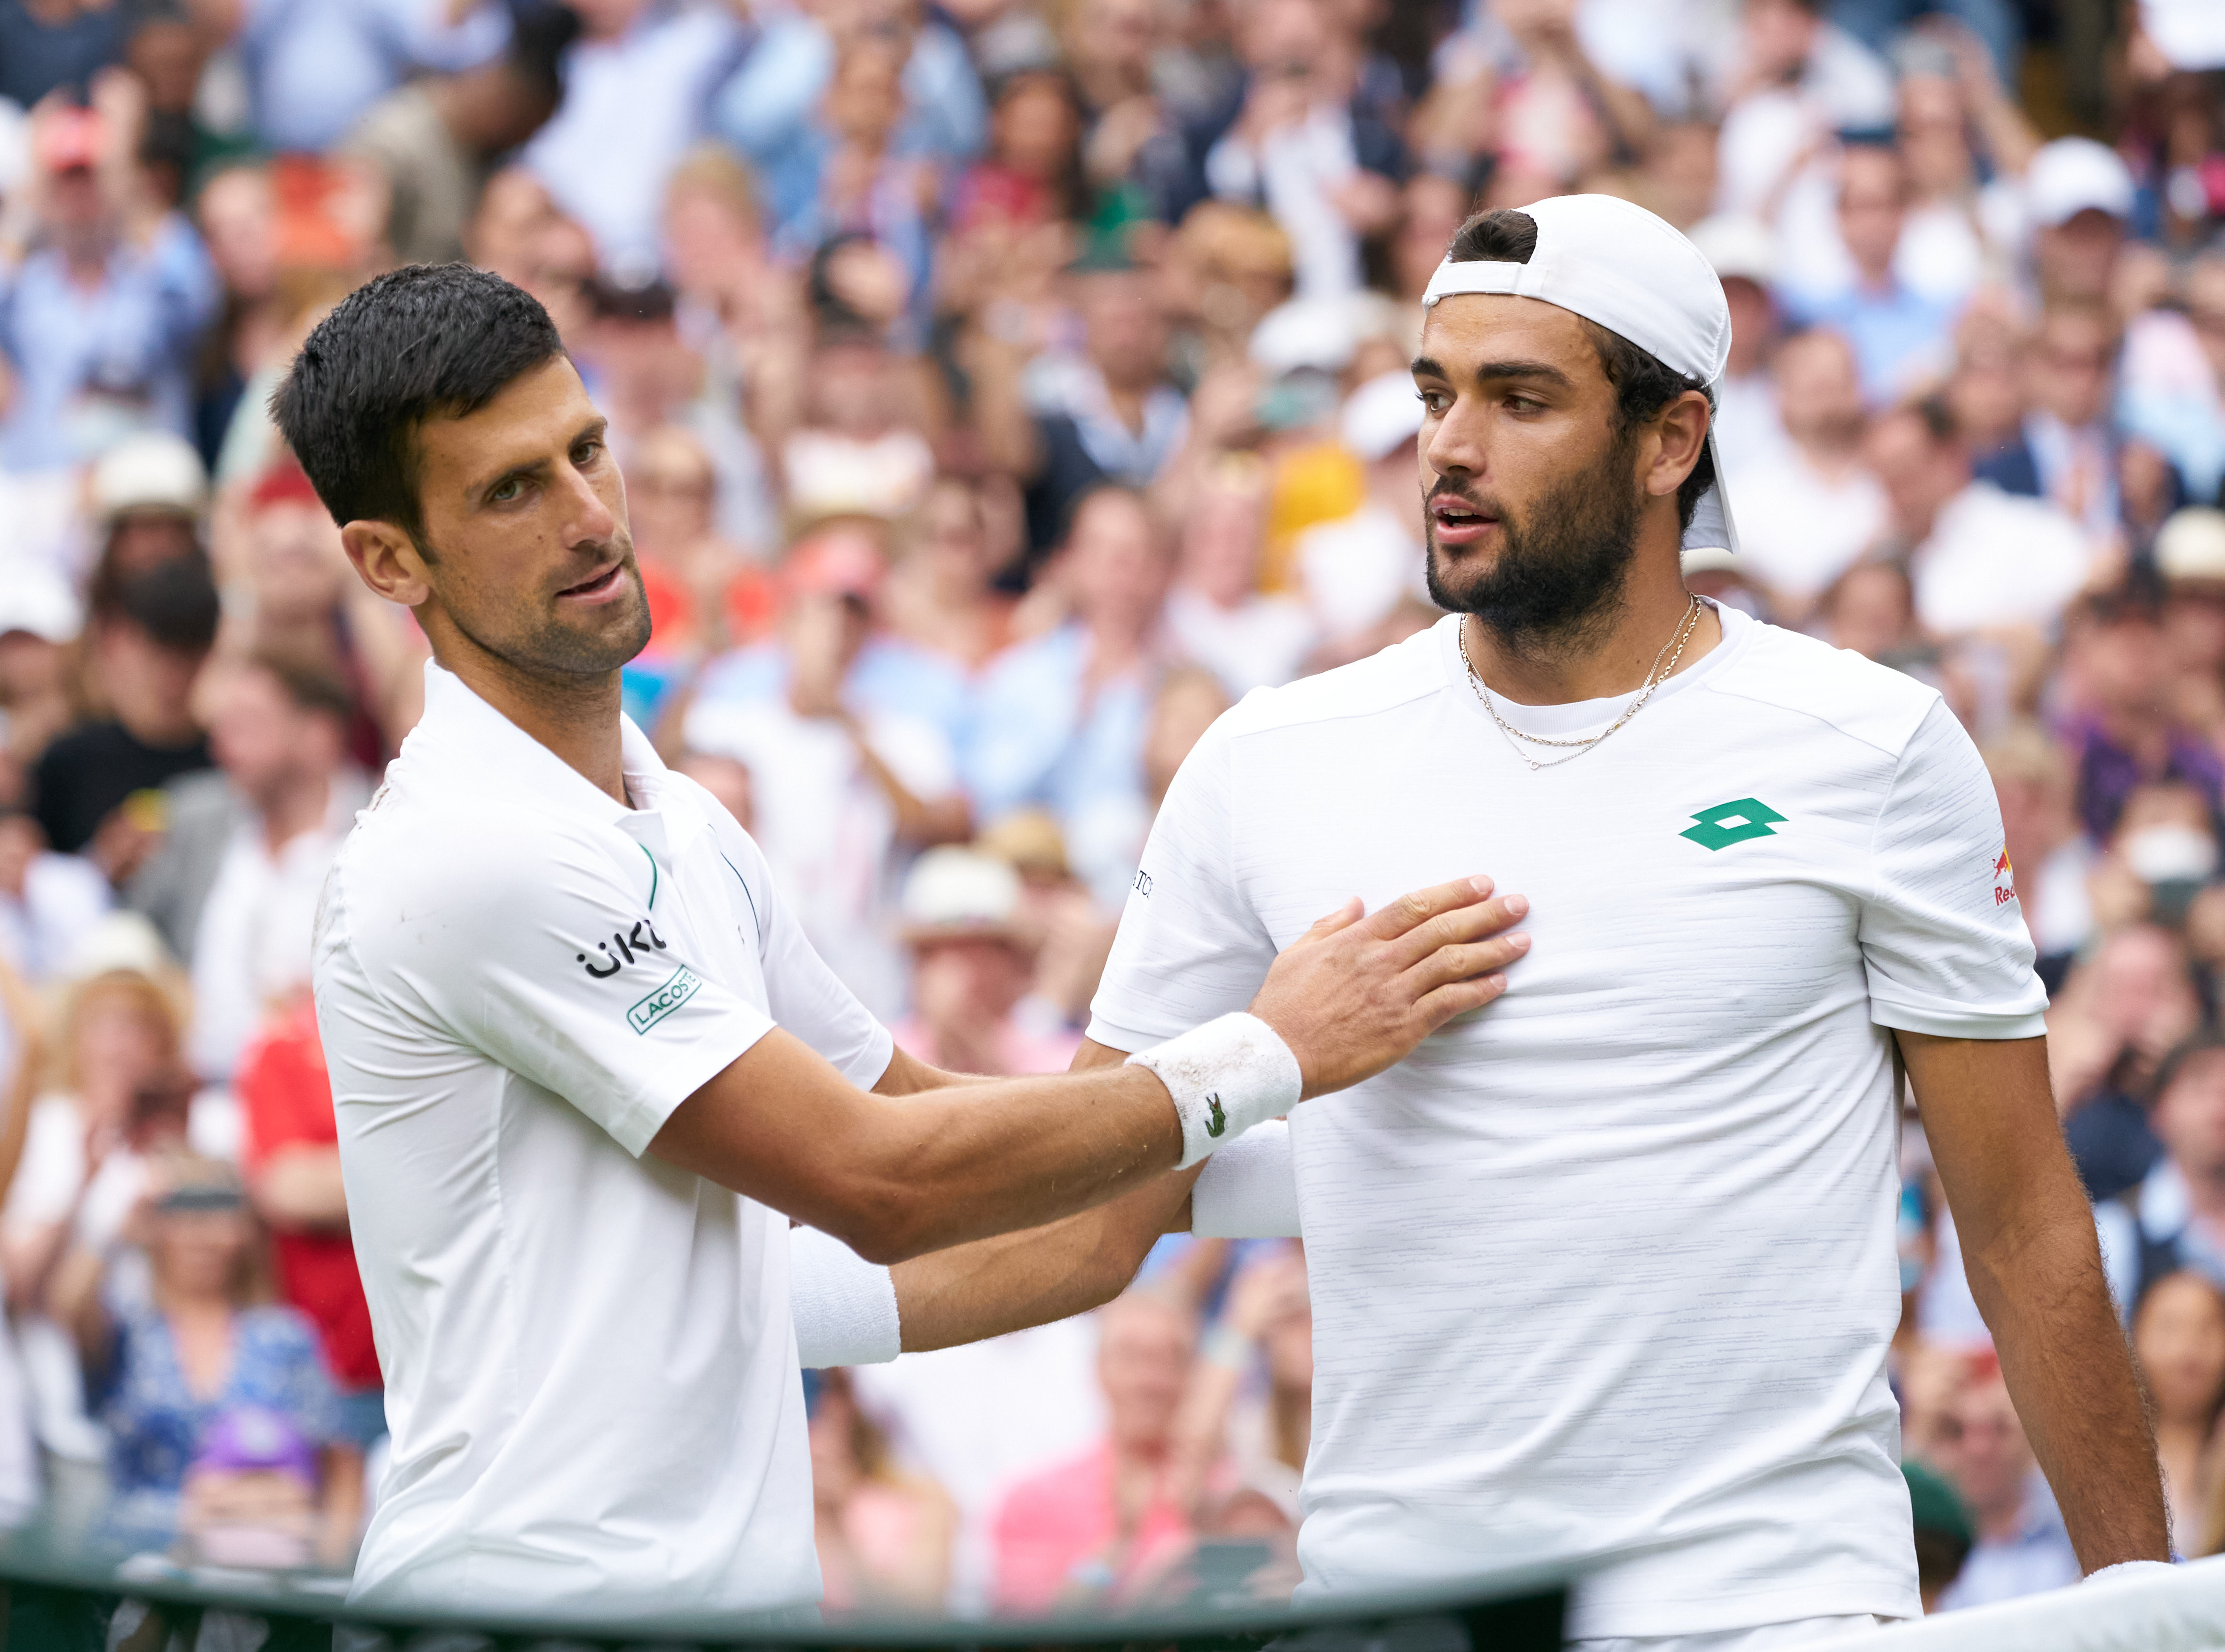 Novak Djokovic (SRB) at the net with Matteo Berrettini (ITA) after winning the mens final on Centre Court at All England Lawn Tennis and Croquet Club.